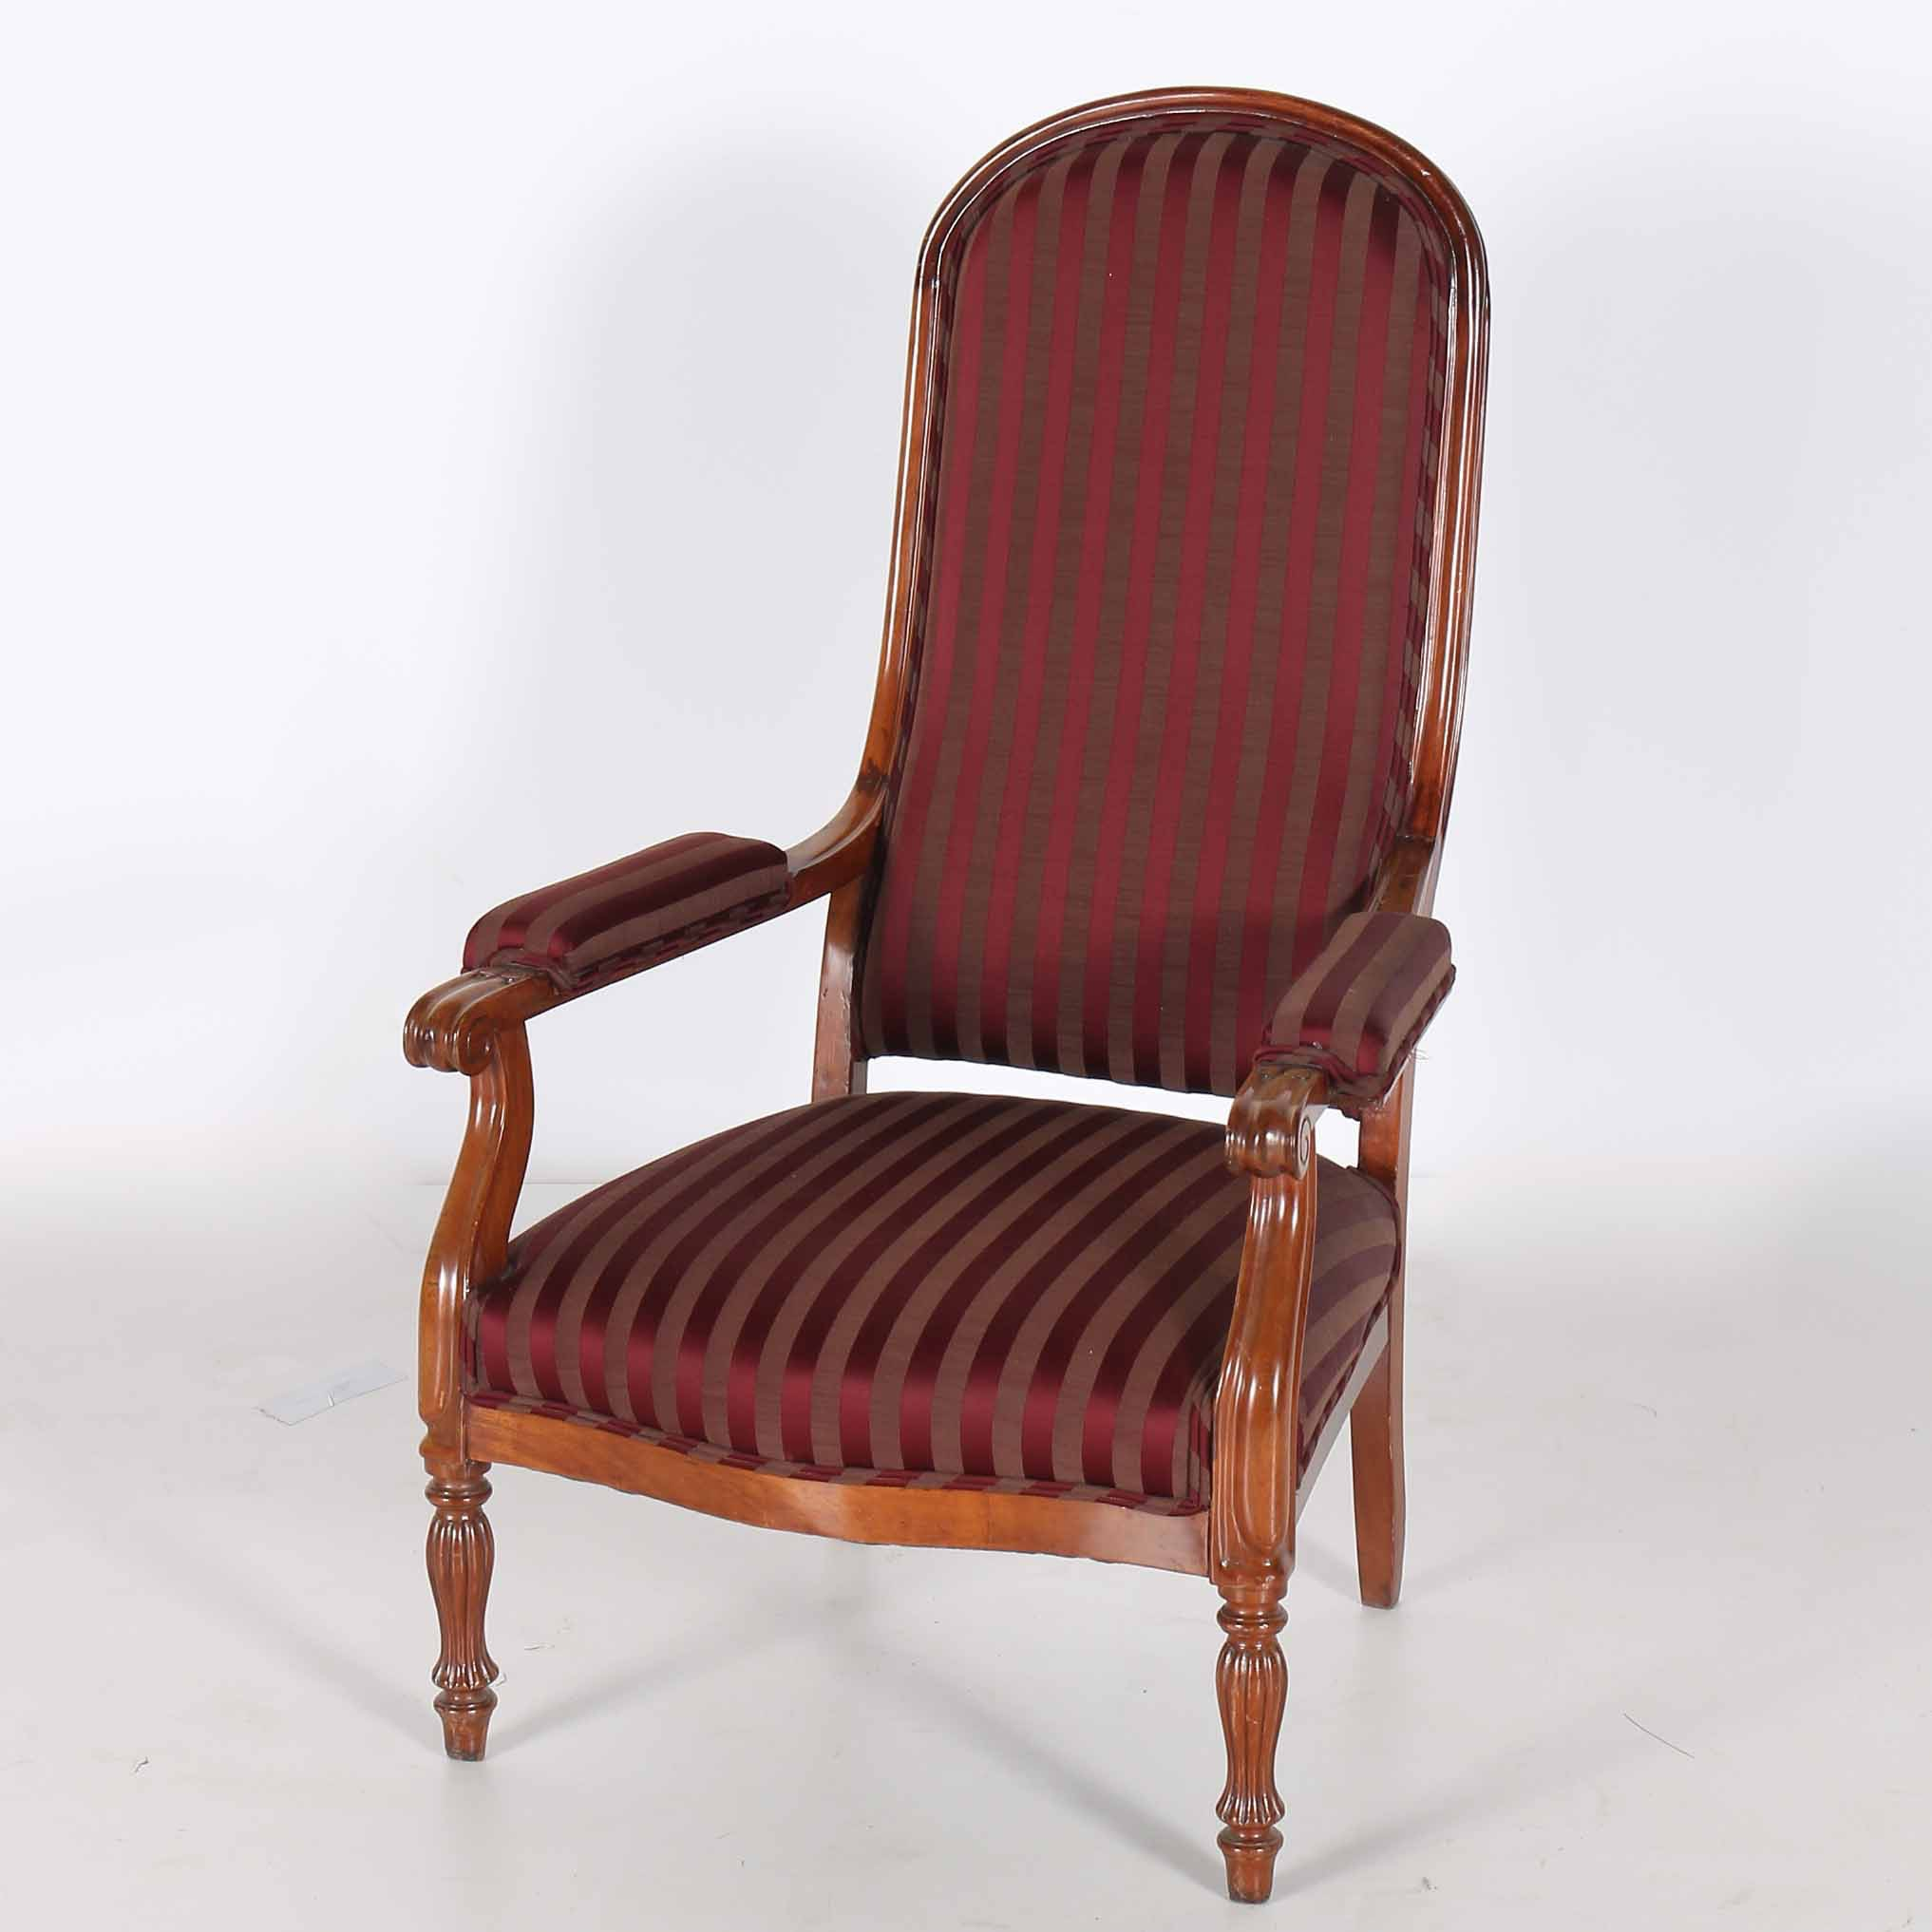 Louis Phillipe Period Arch Back Fauteuil